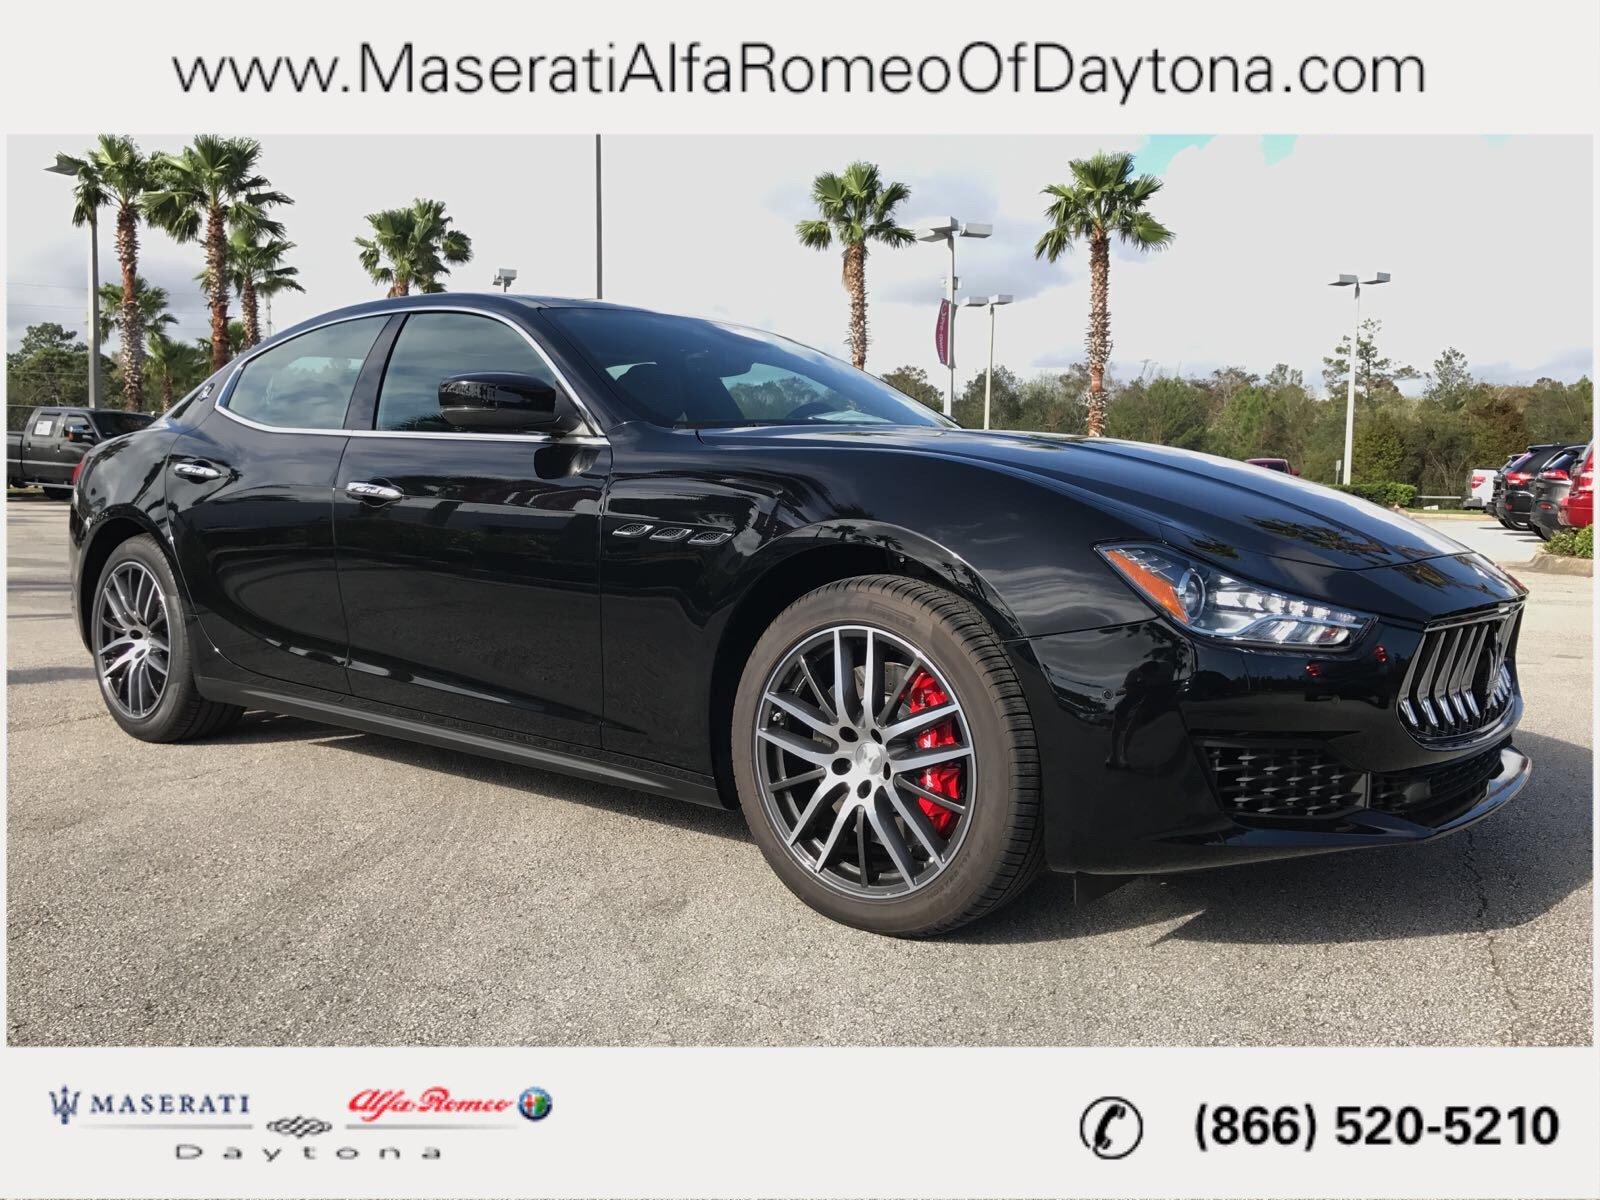 New 2018 Maserati Ghibli S 4dr Car in Daytona Beach M